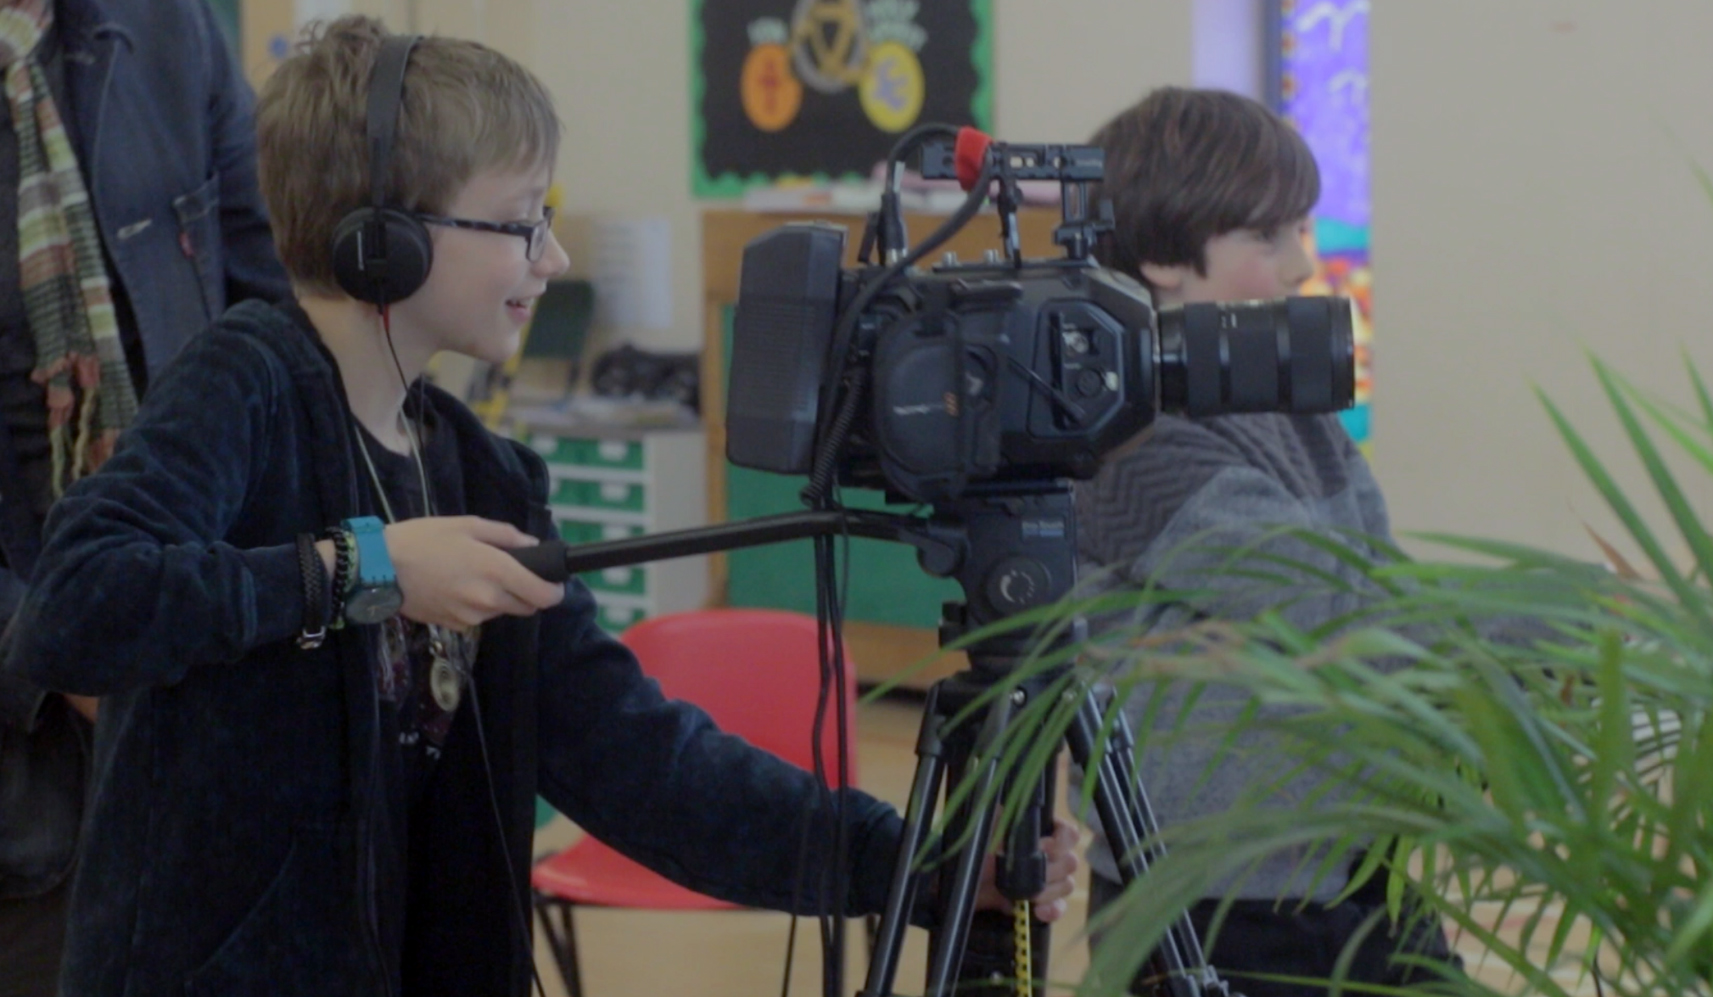 4 day Children's Film Making Summer Camp course mentored by Clive Martin